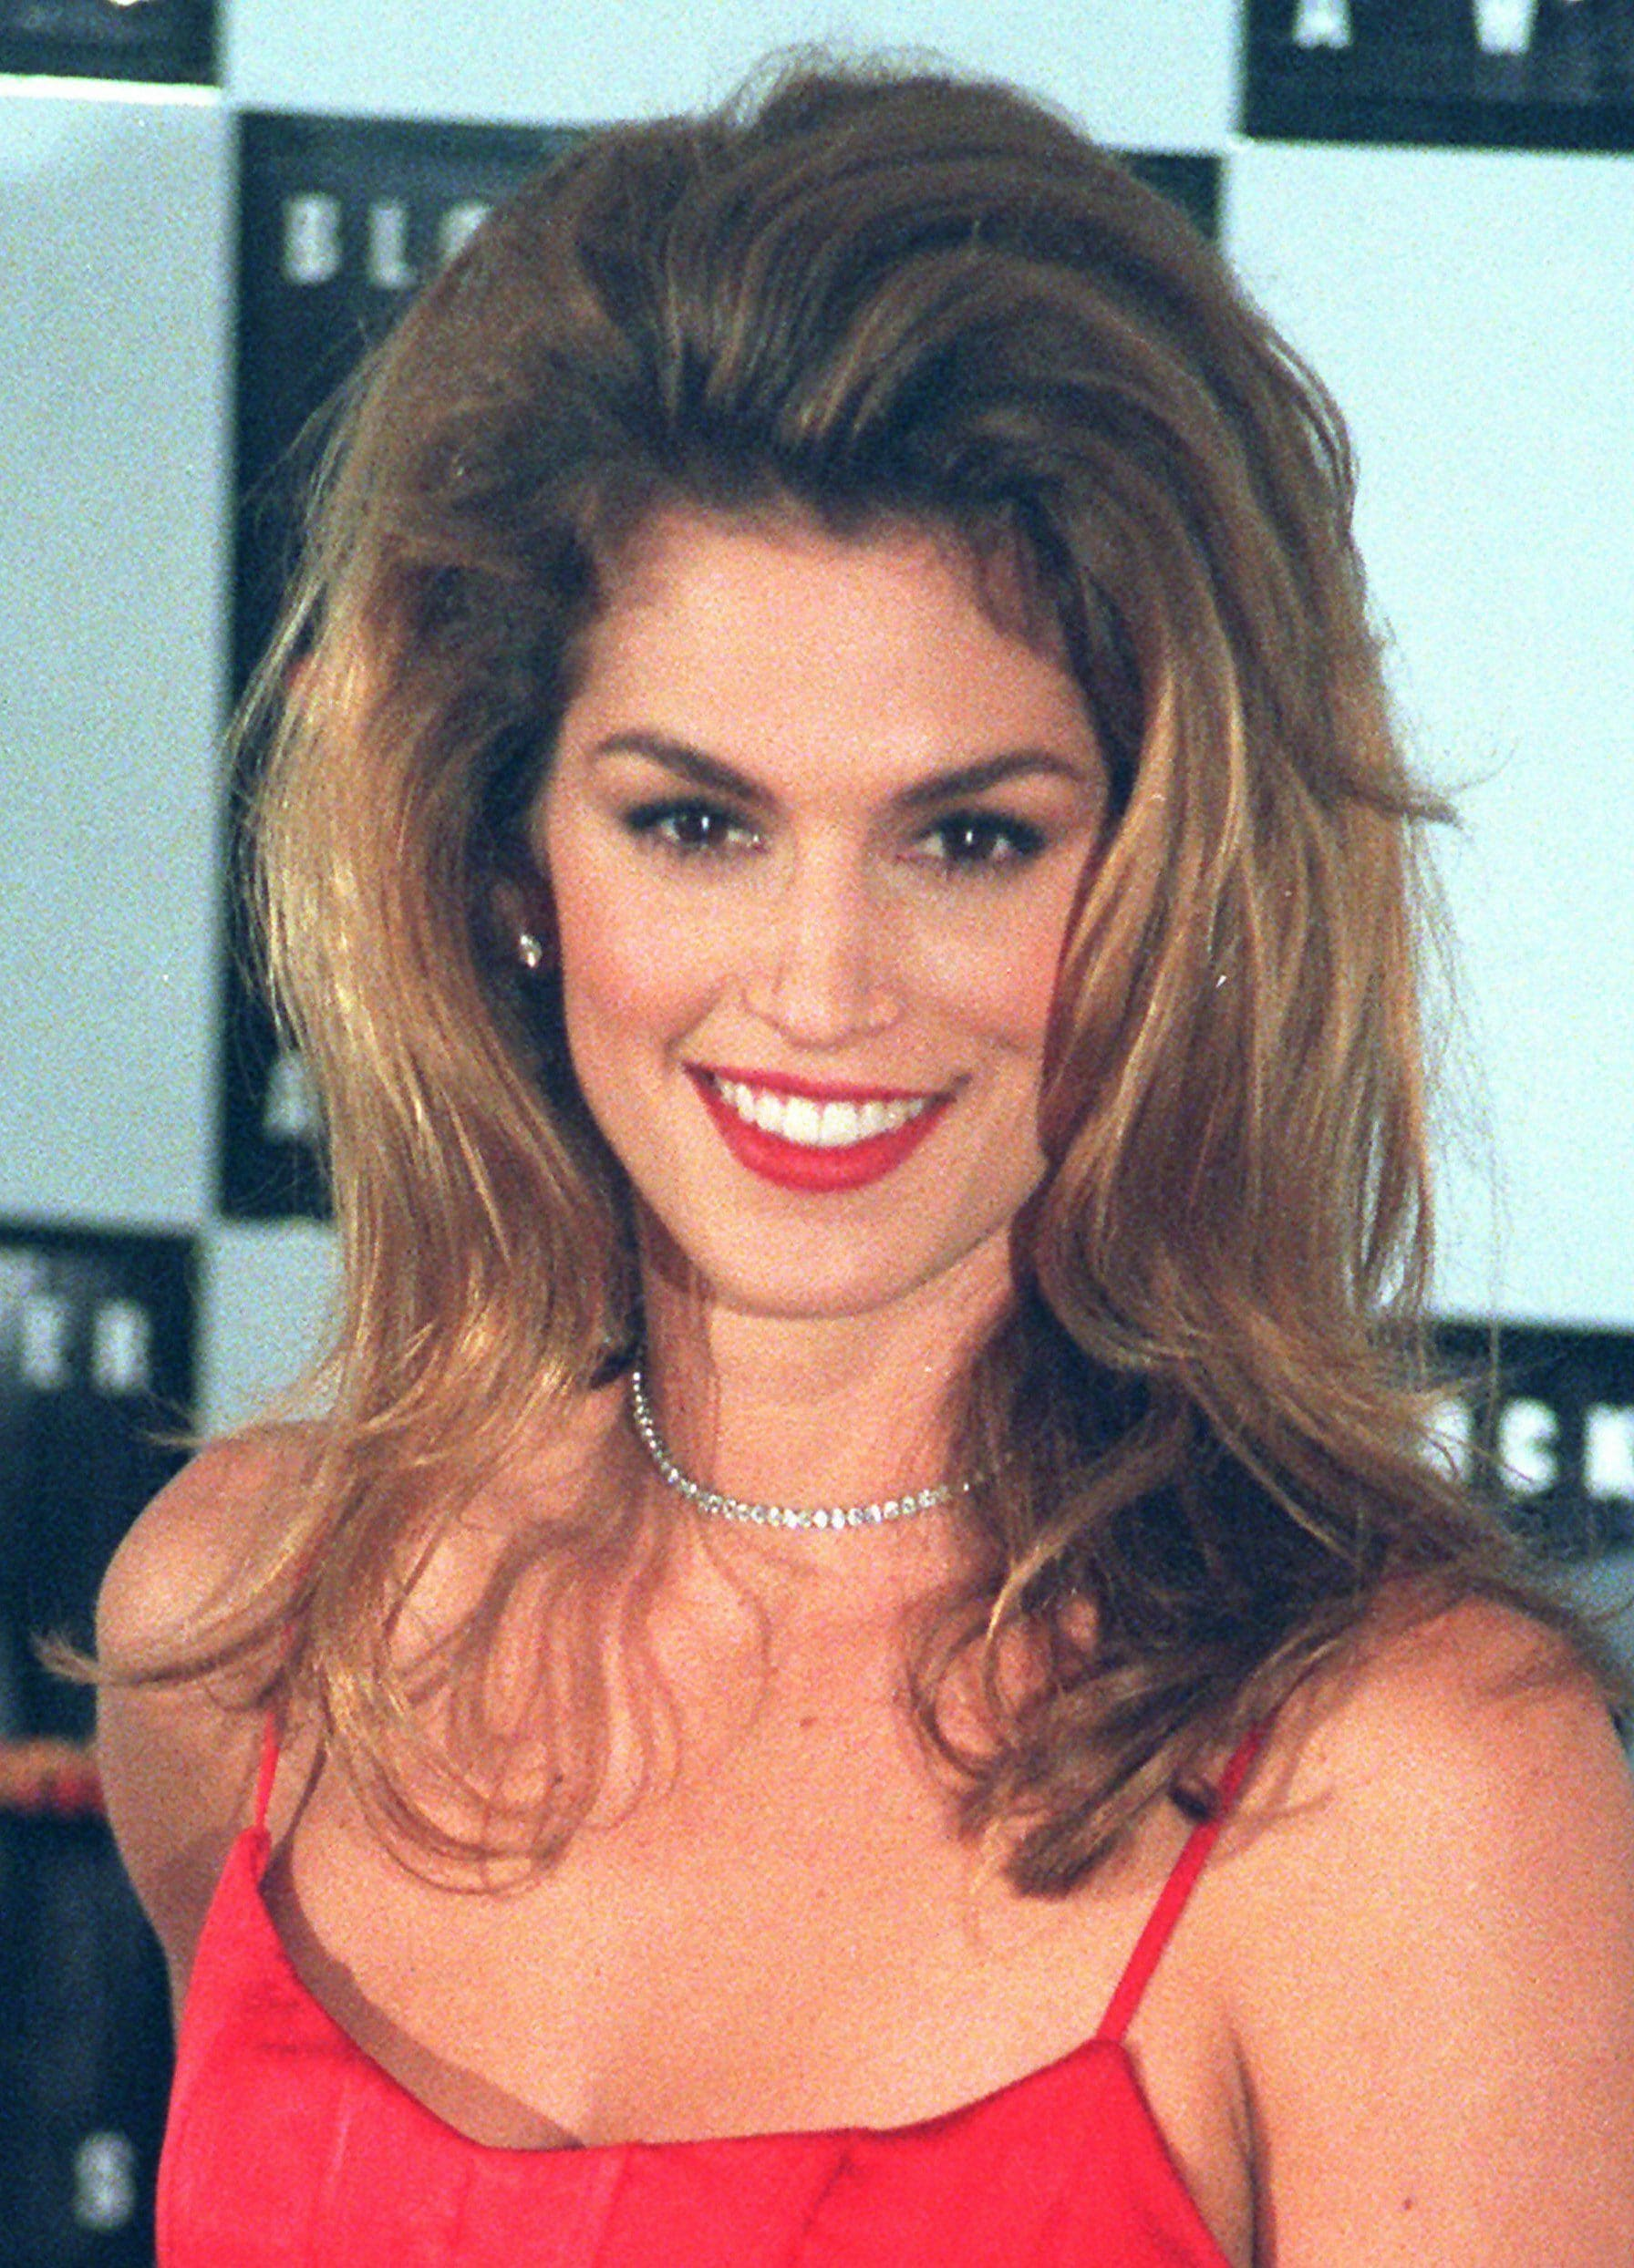 90s hairstyles: Cindy Crawfod big '90s blowout on brown highlighted hair. Cindy is wearing a red camisole dress and red lipstick